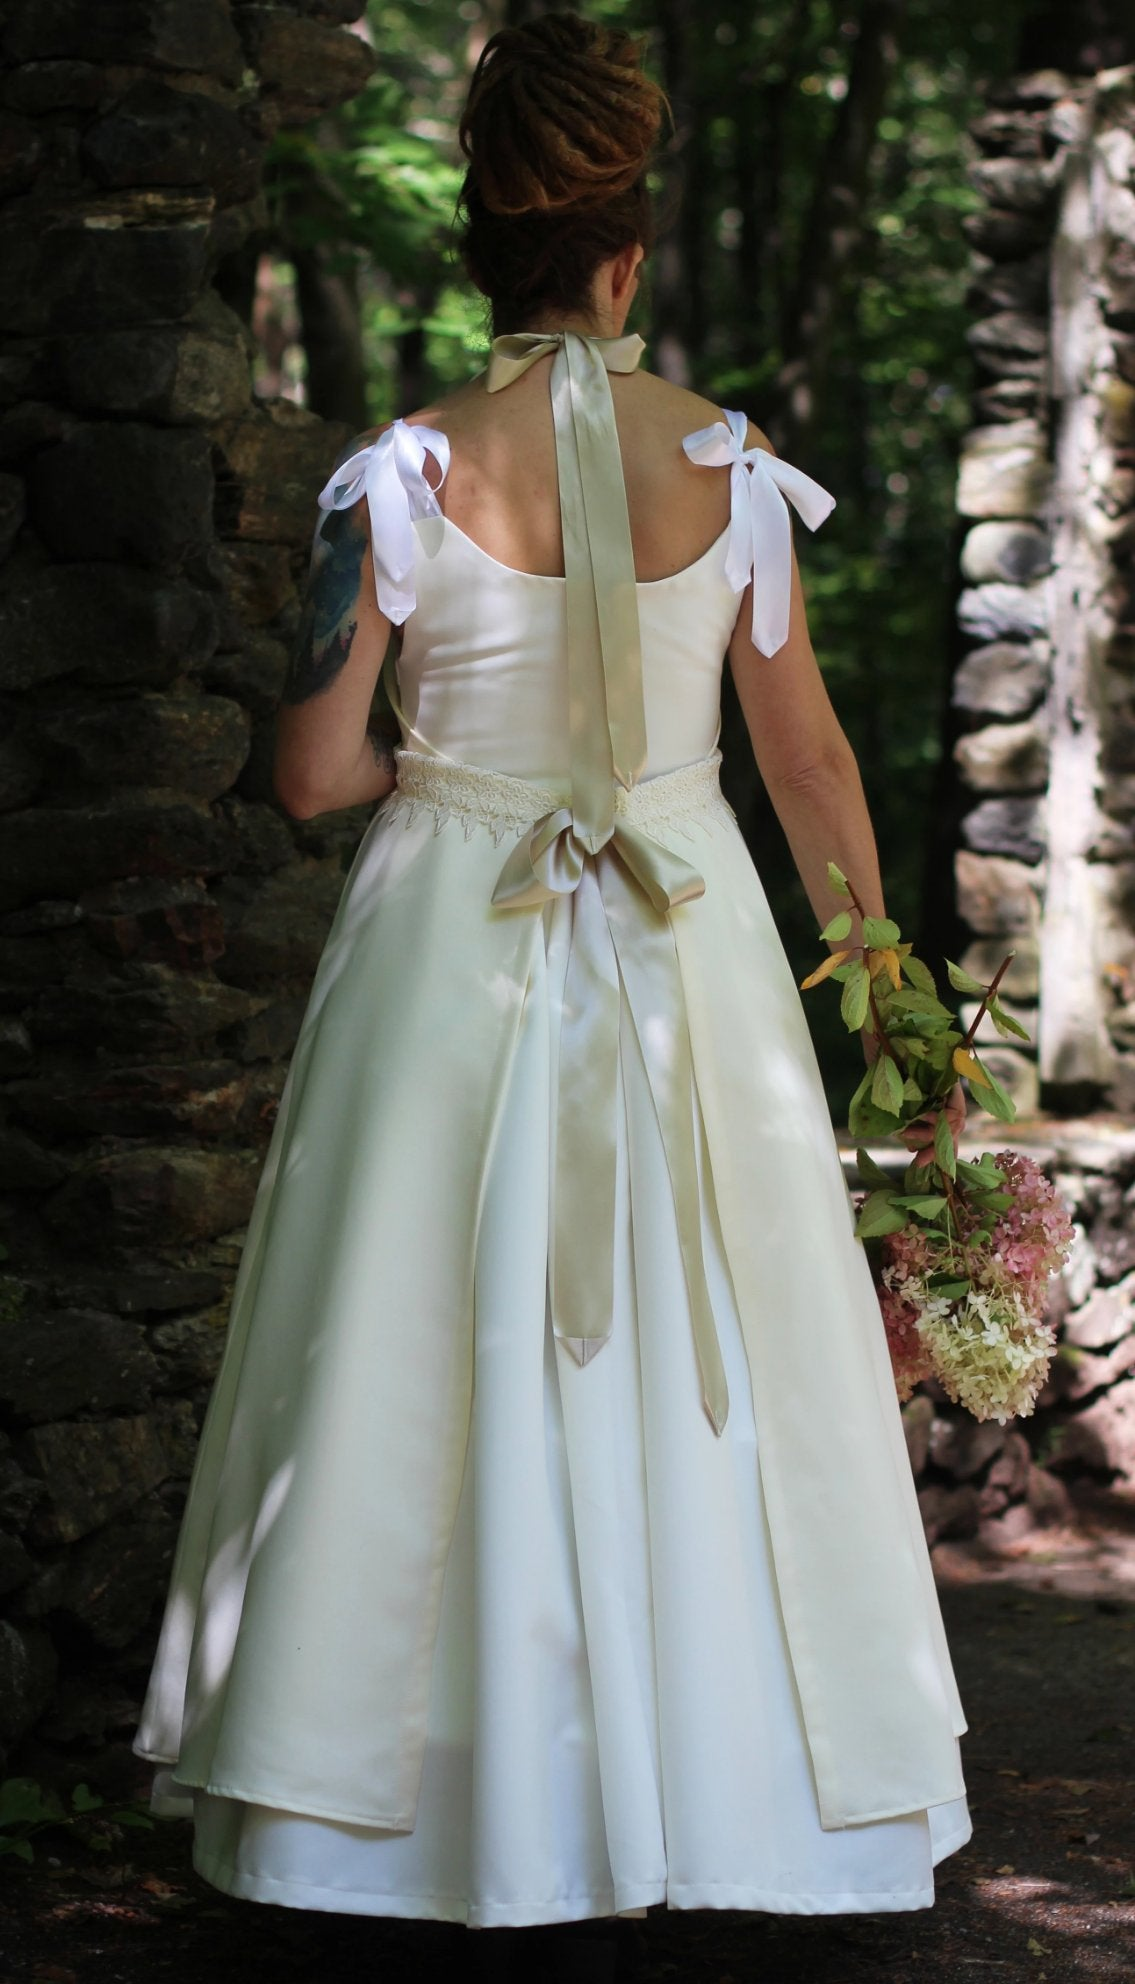 Bridal Apron with Empire Waist - Back view